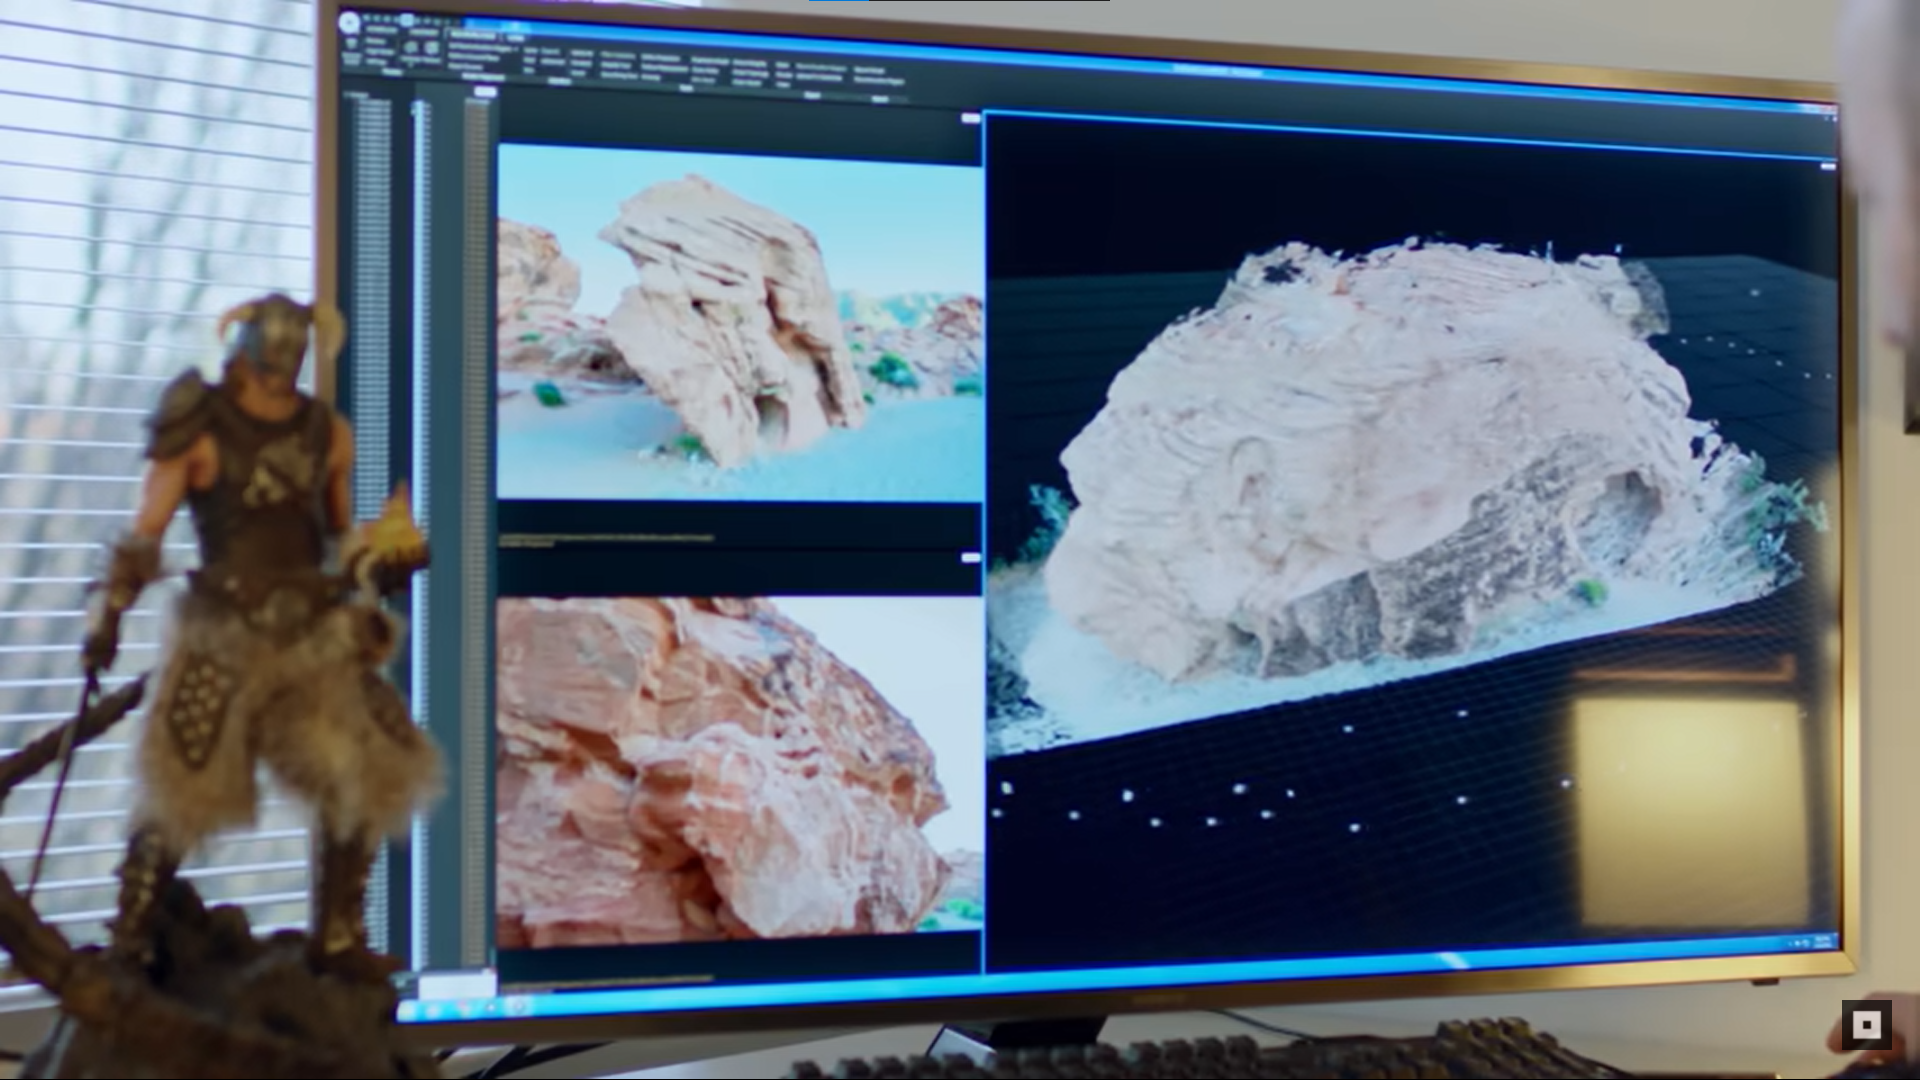 Photogrammetry techniques being used for the development of The Elder Scrolls 6's game world